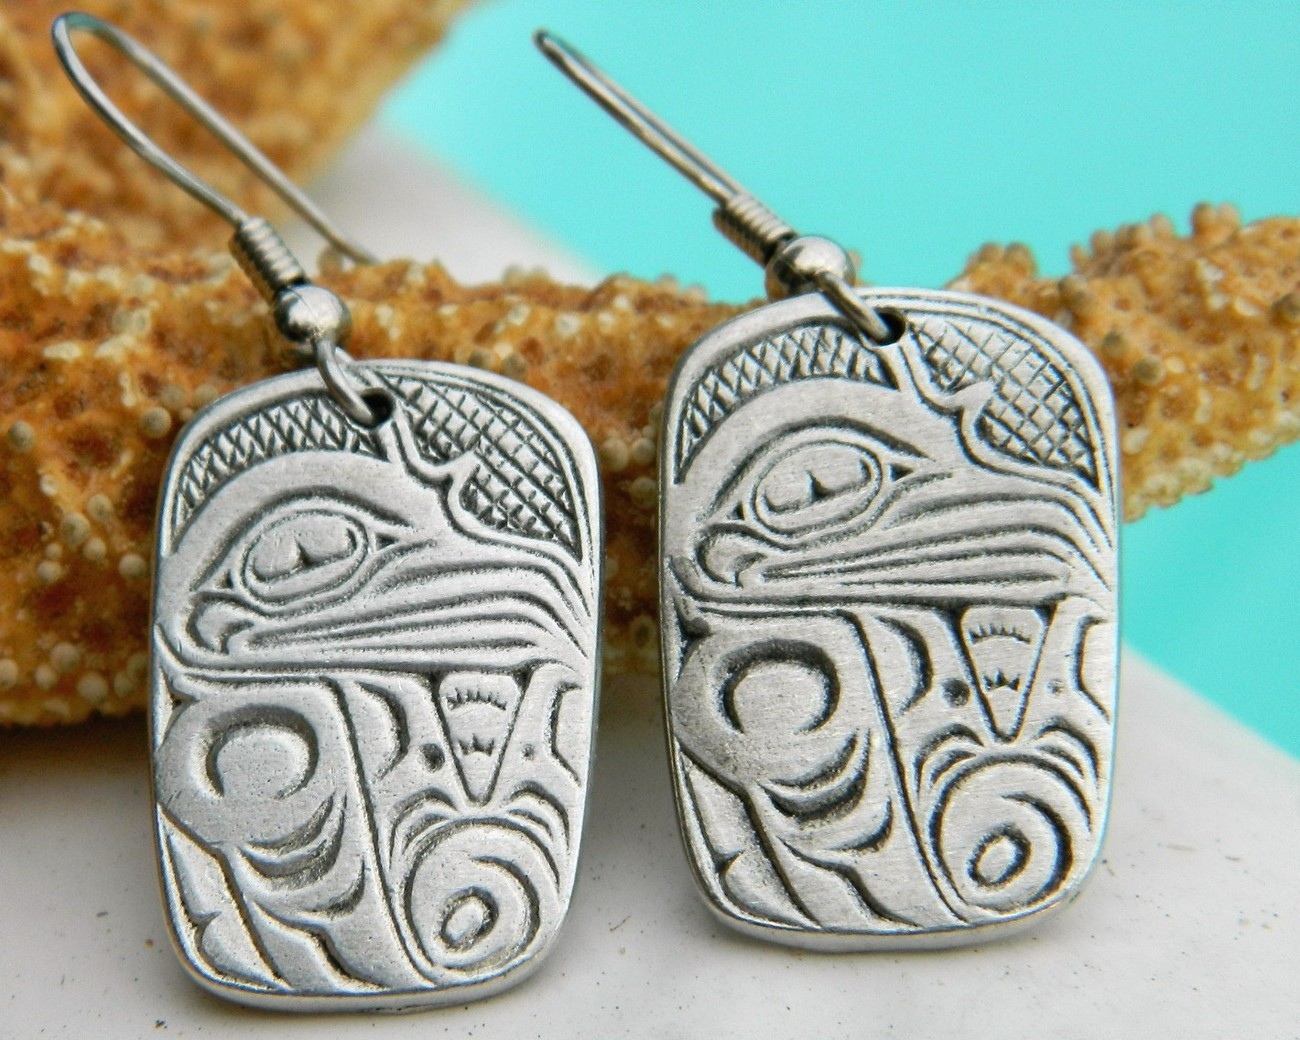 Aztec_eagle_bird_symbol_earrings_cuauhtli_pewter